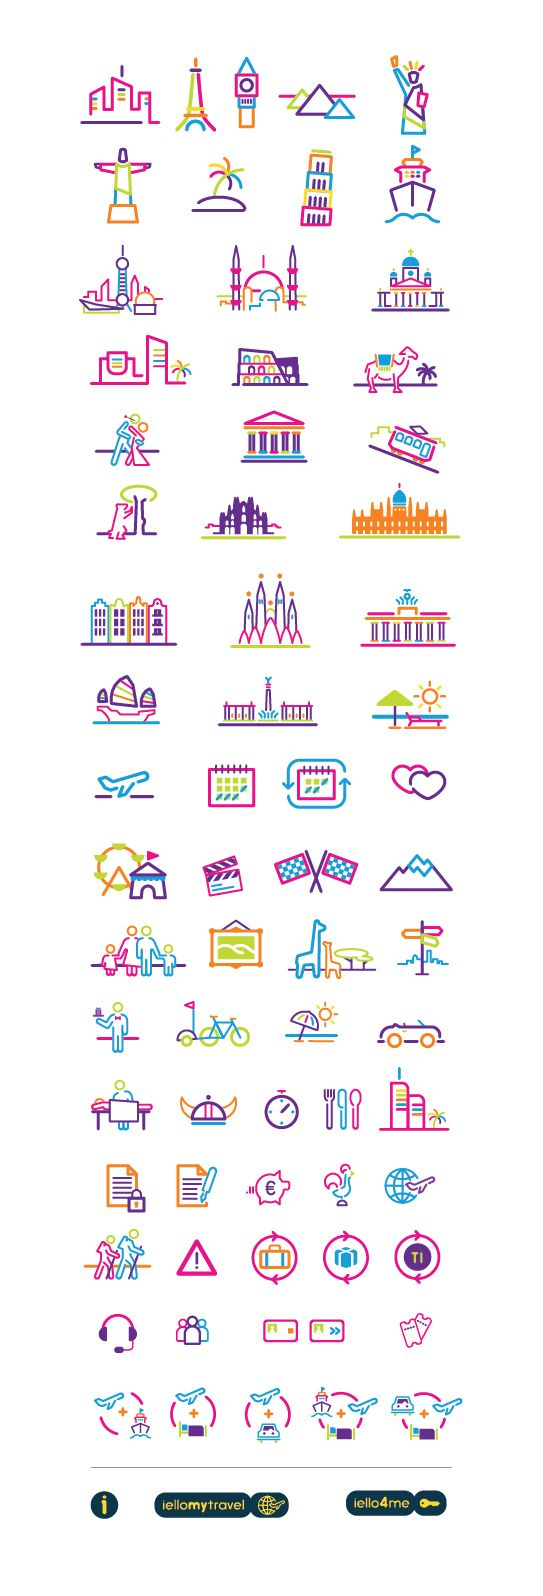 IELLO TRAVEL by David Rafachinho, via Behance